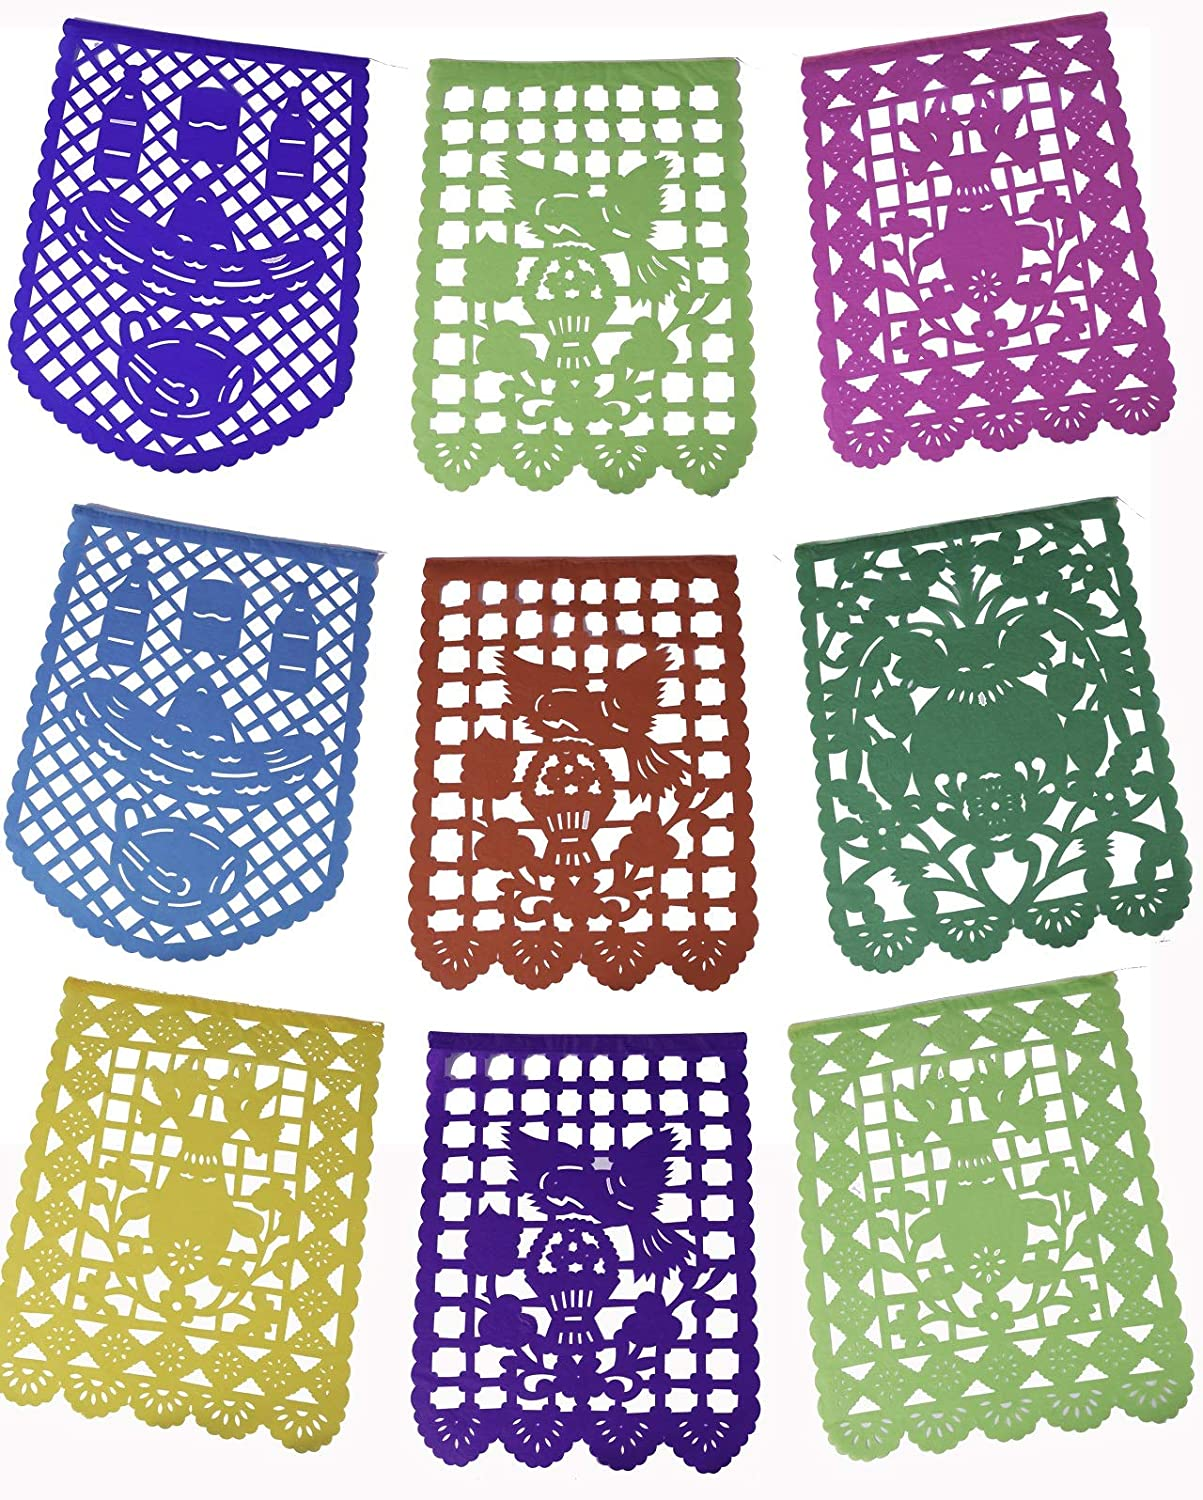 ART MEXICO Papel Picado Banner Fiesta Decorations | 5 meter (16ft) Paper Banner with 16 Medium Sized Flags | Mexican Papel Picado Banner